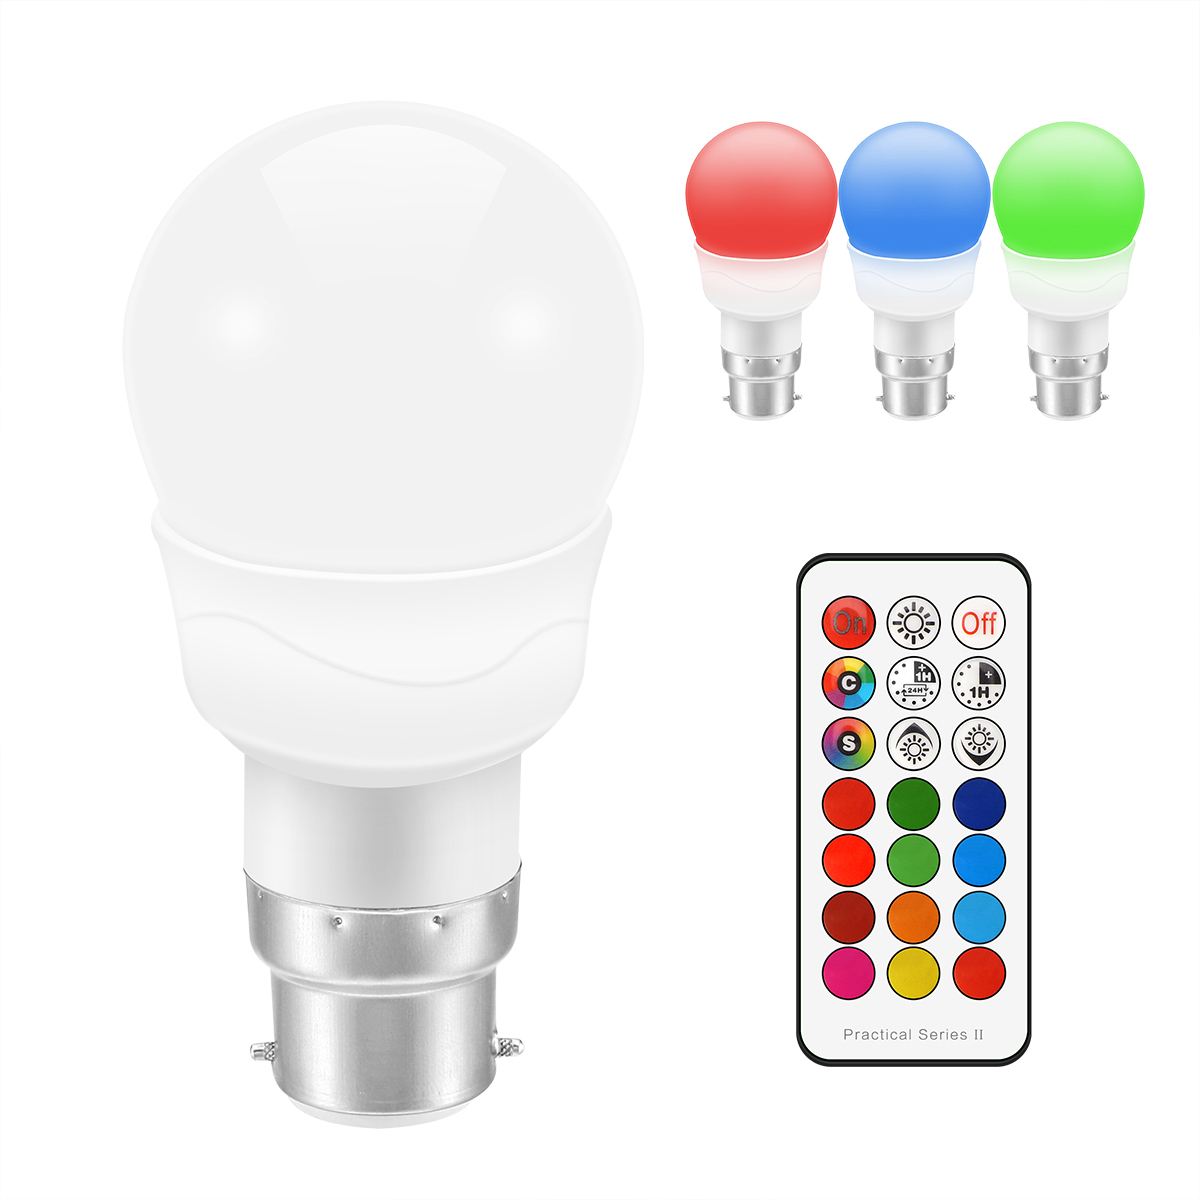 Ampoule Led 3w Us 12 69 35 Off Rgb Led Bulb E27 B22 3w Rgb Dimmable Ampoule Led Smart Lights For Home Holiday Decoration With Remote Control In Led Bulbs Tubes